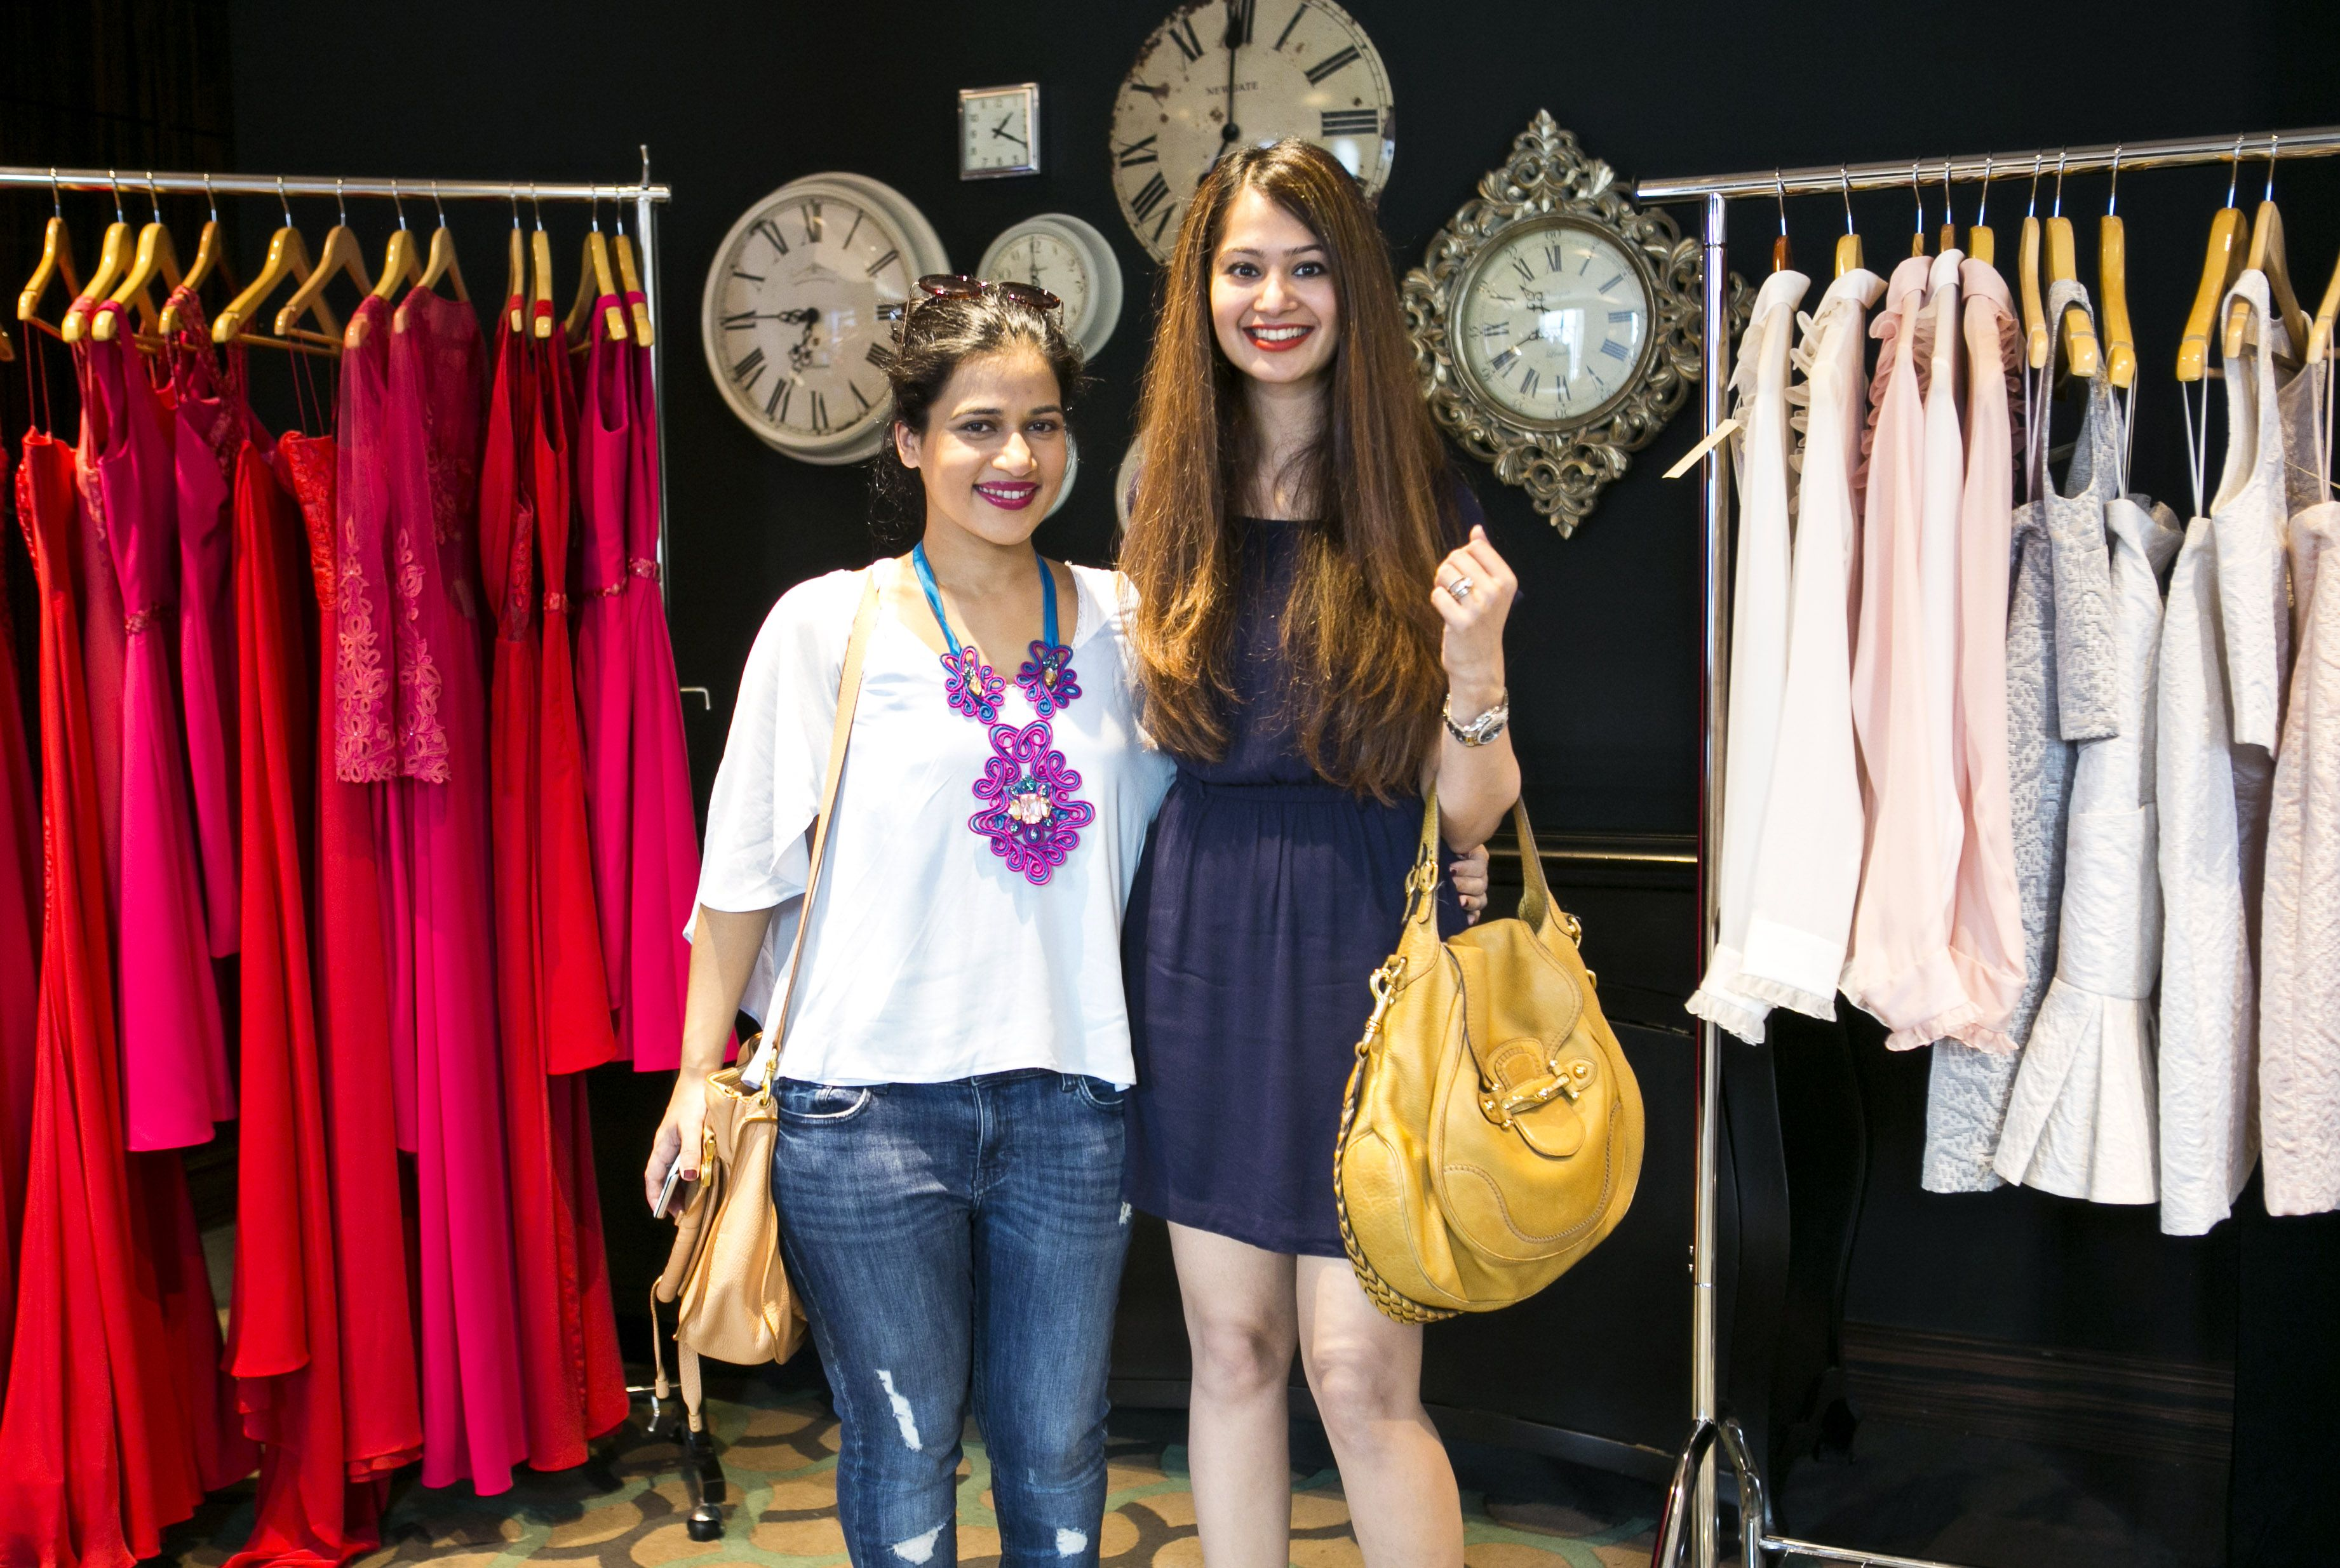 Malika Omar And Karuna Advani At The Glam Closet Trunk Show At Capital  Club, DIFC